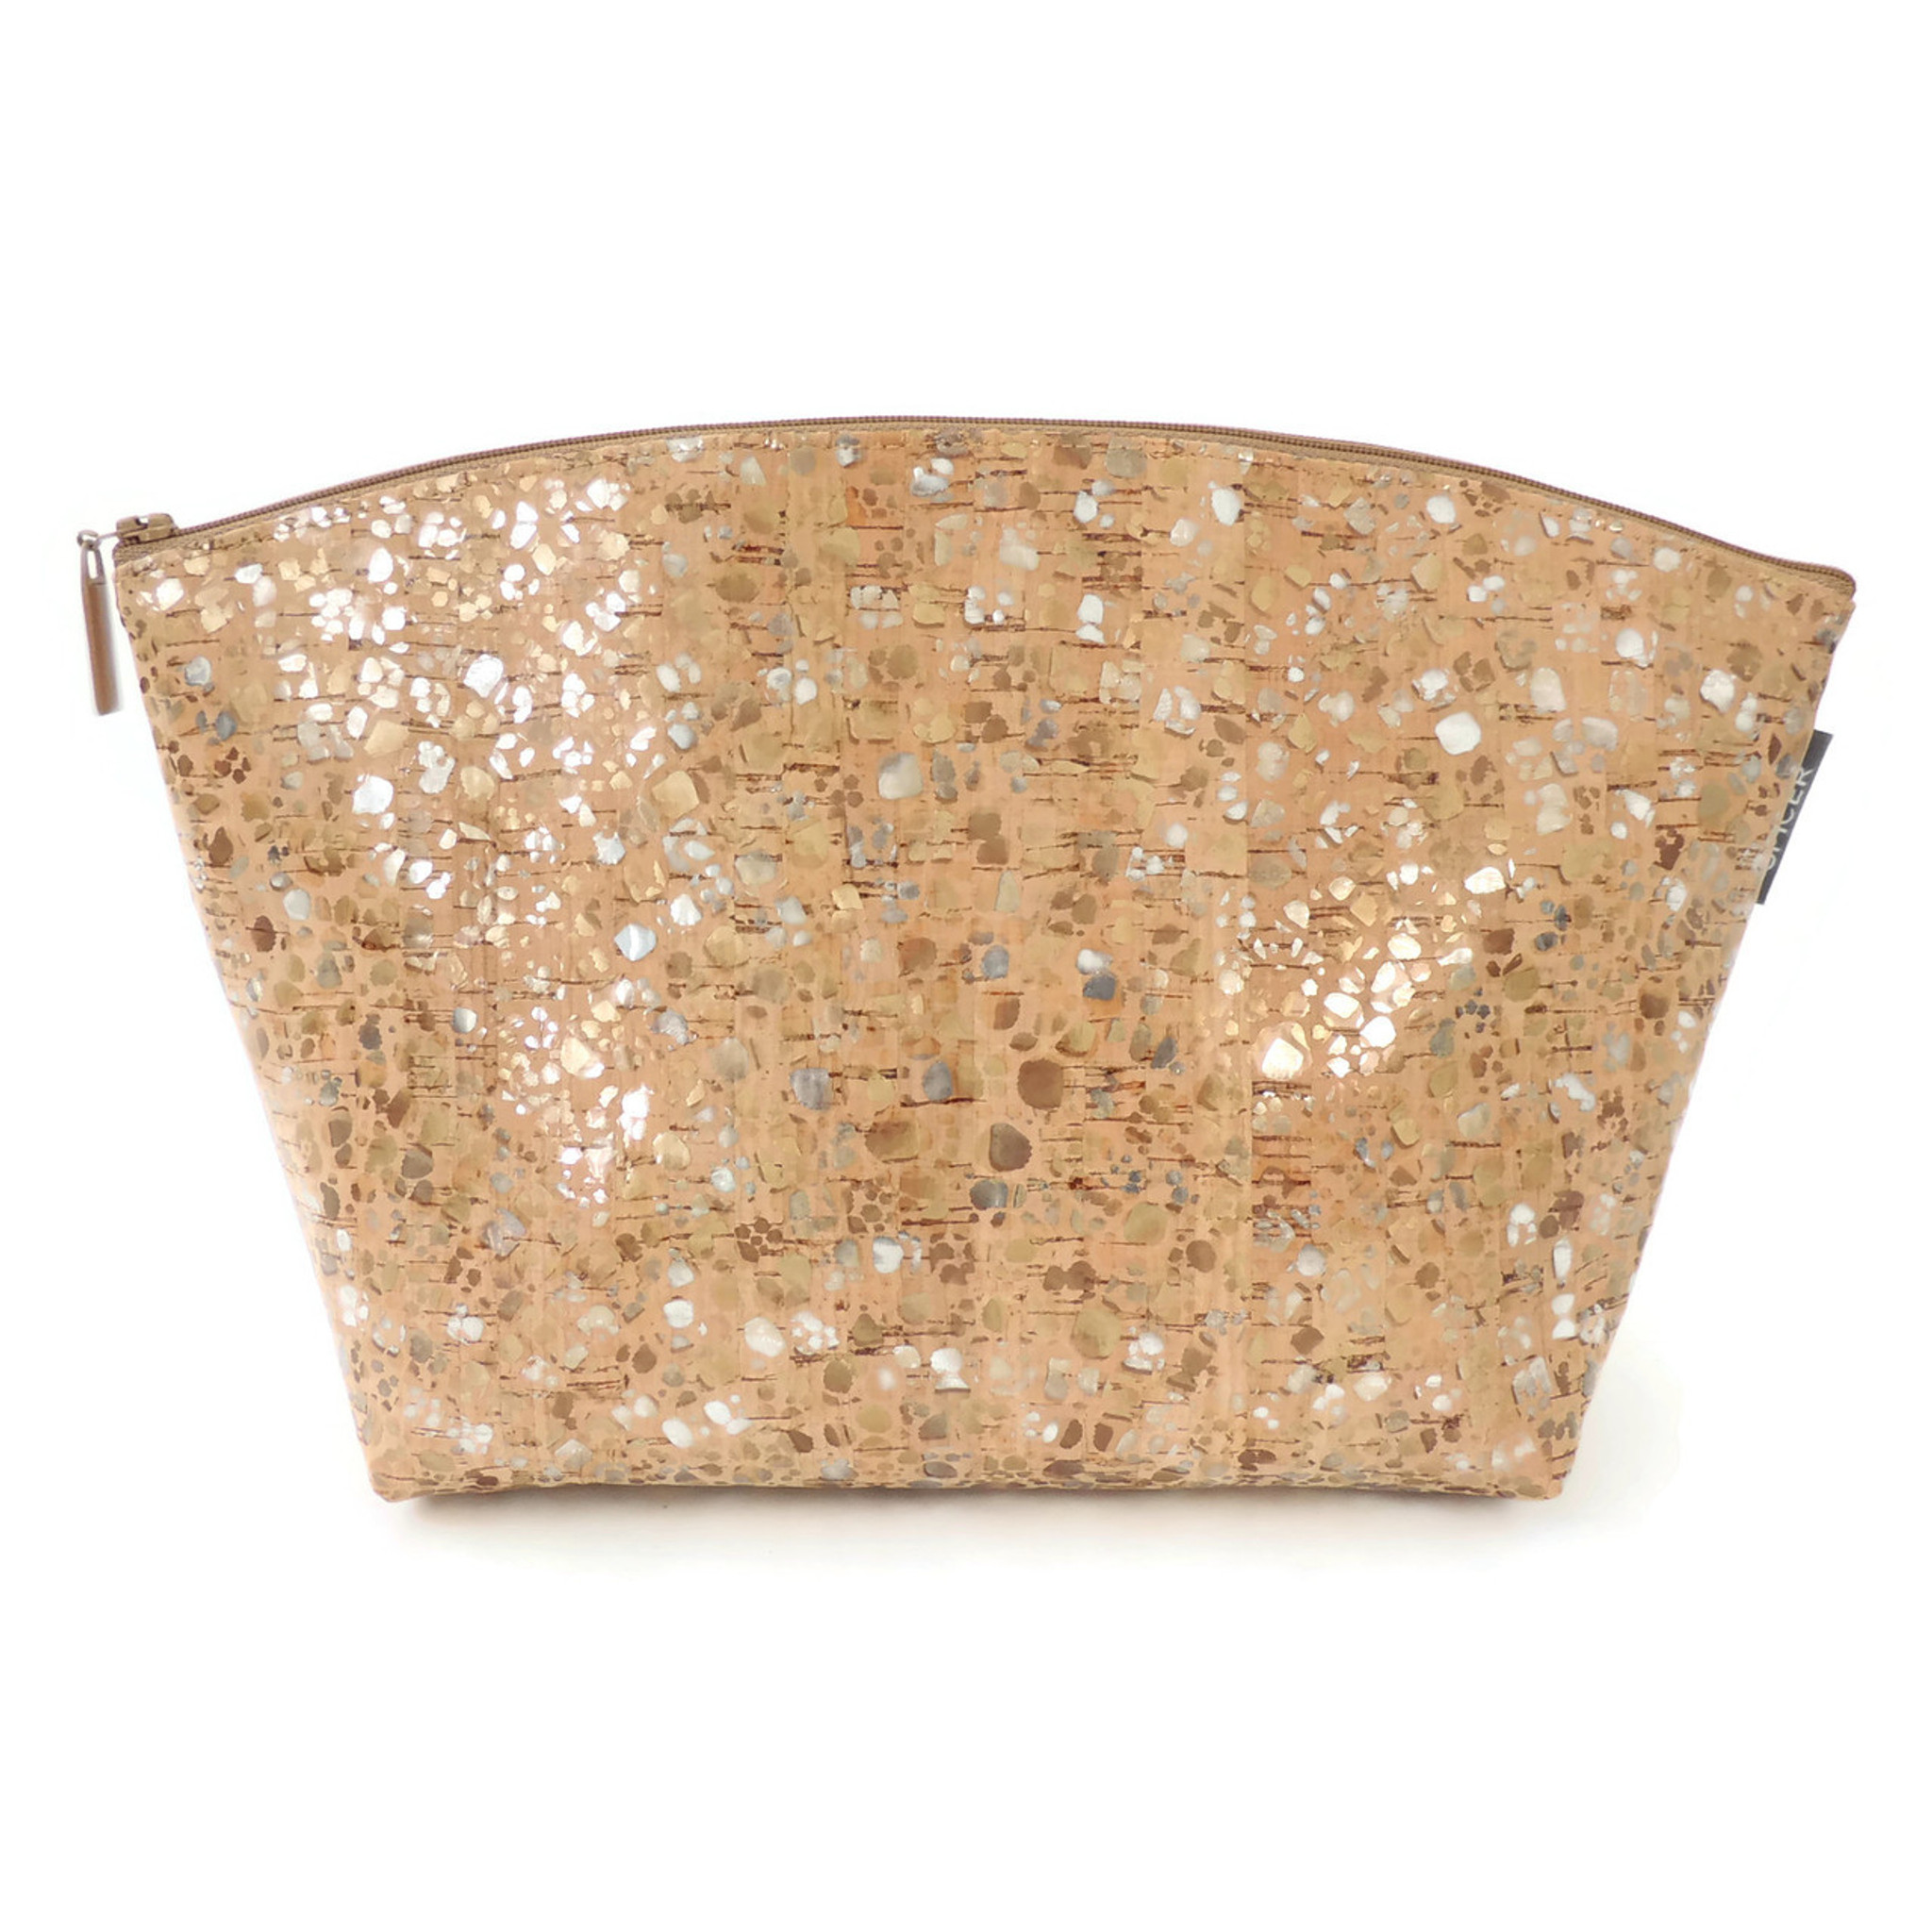 Large Standing Pouch in Metallic Pebble Cork